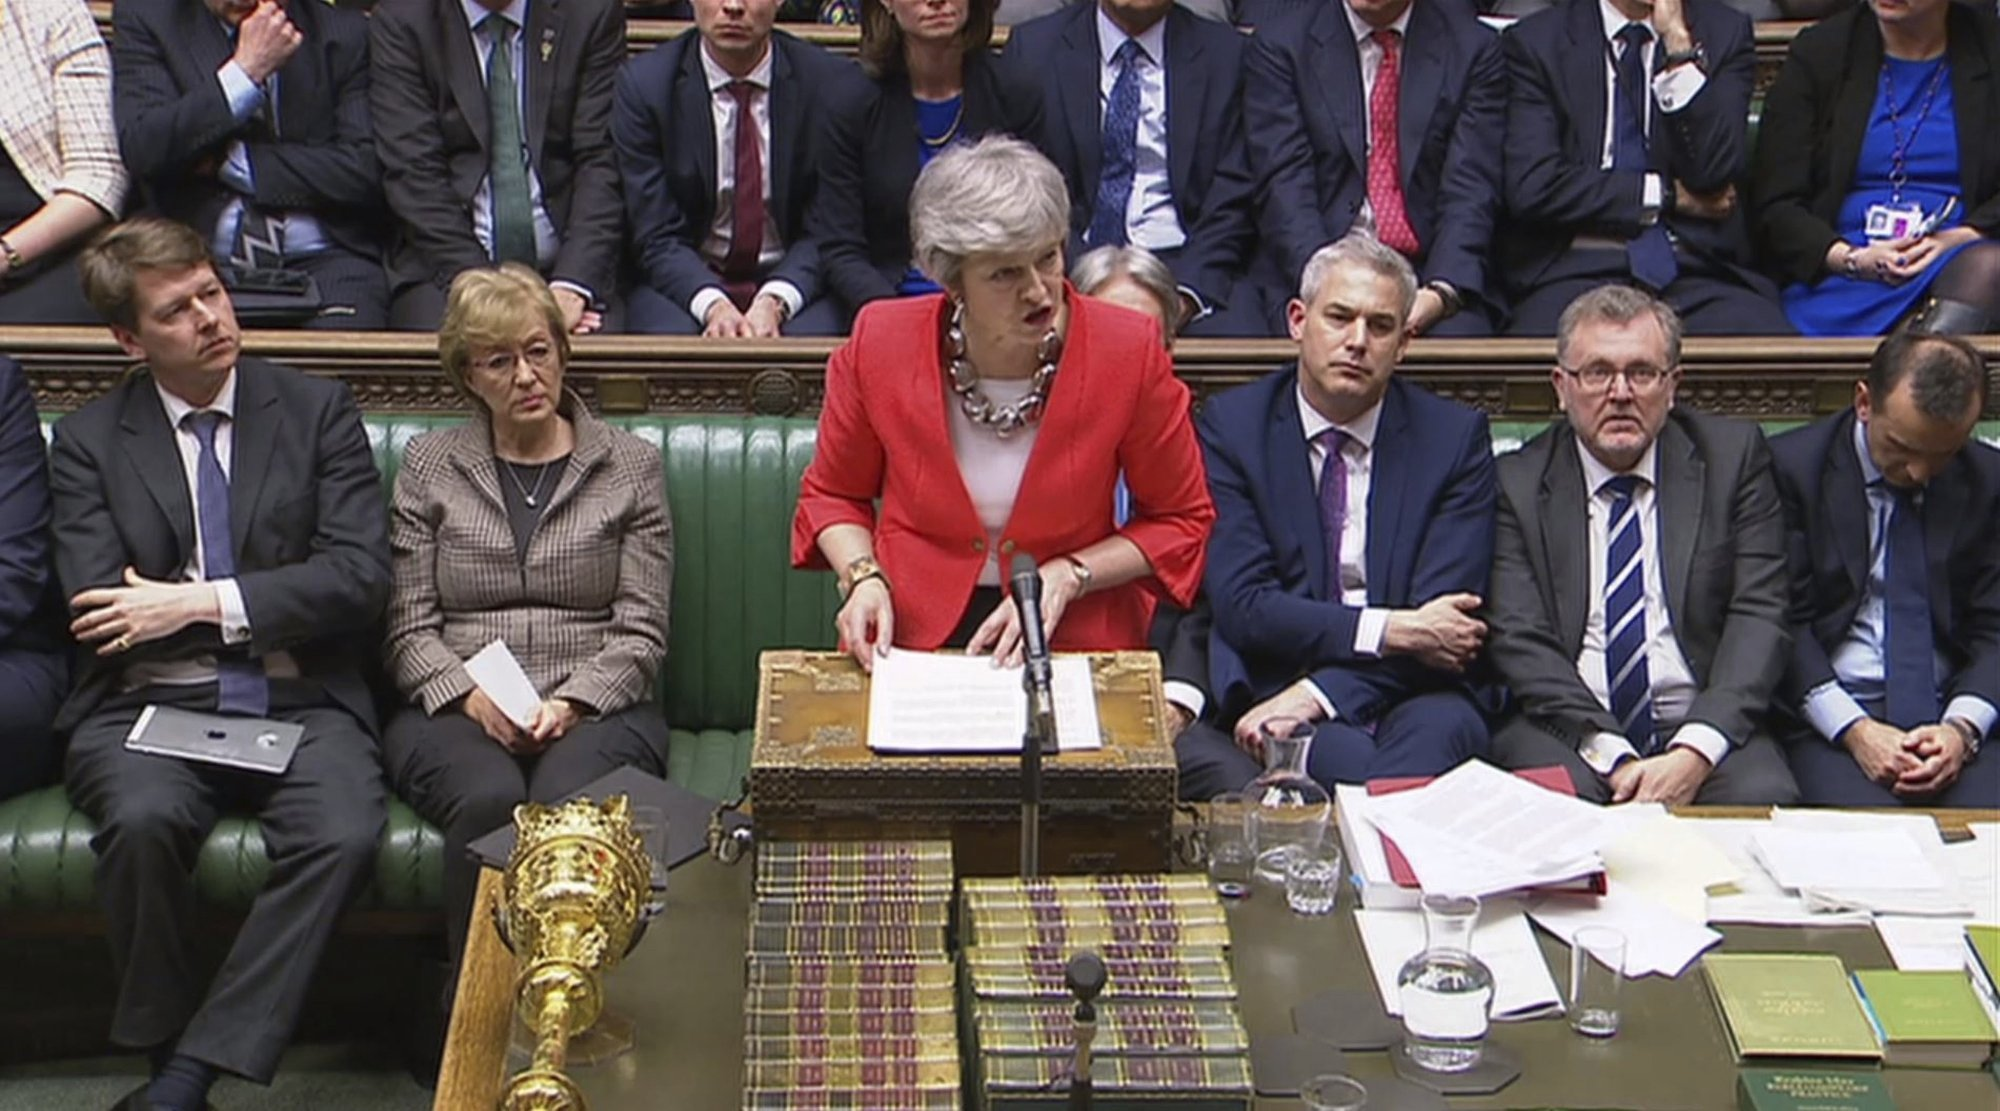 In this image taken from video, Britain's Prime Minister Theresa May speaks to lawmakers in parliament, London, on Tuesday, March 12. — AP